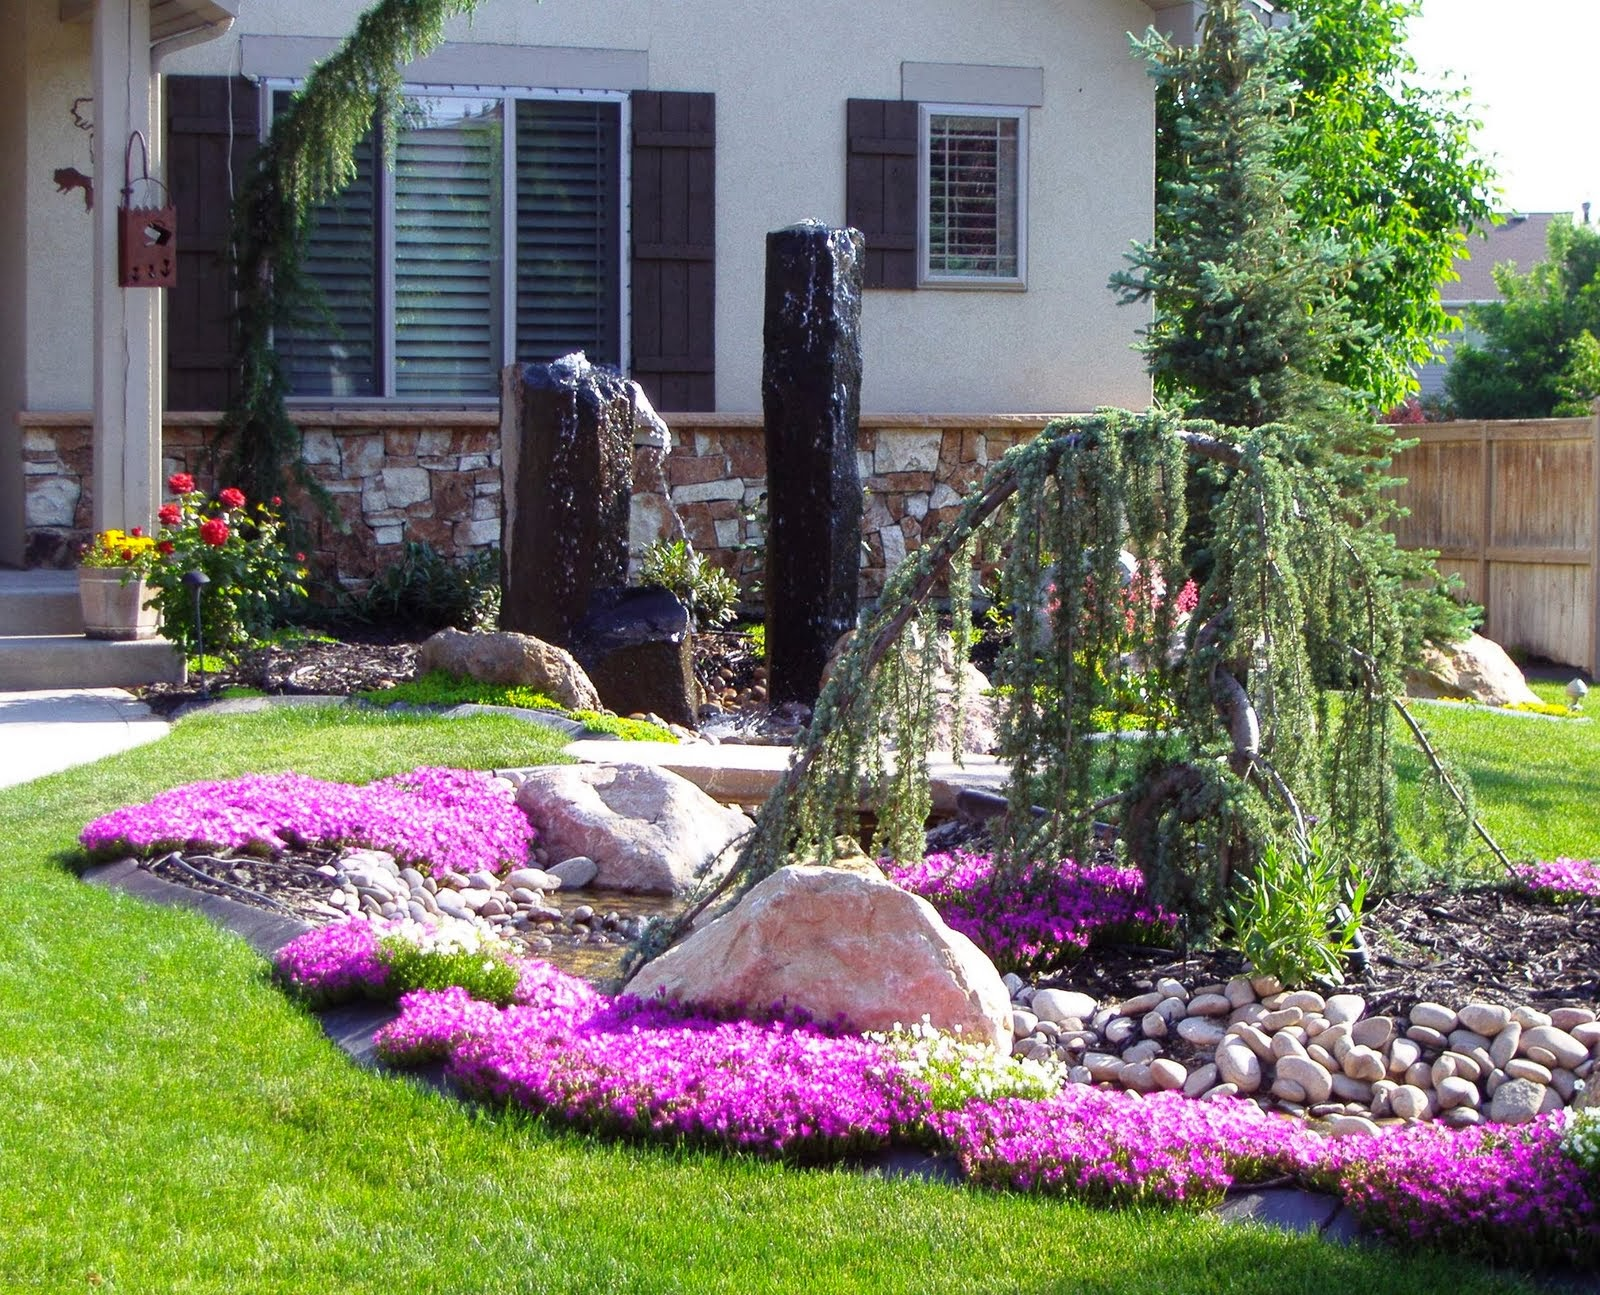 Gardening and Landscaping: Front Yard Landscaping Ideas